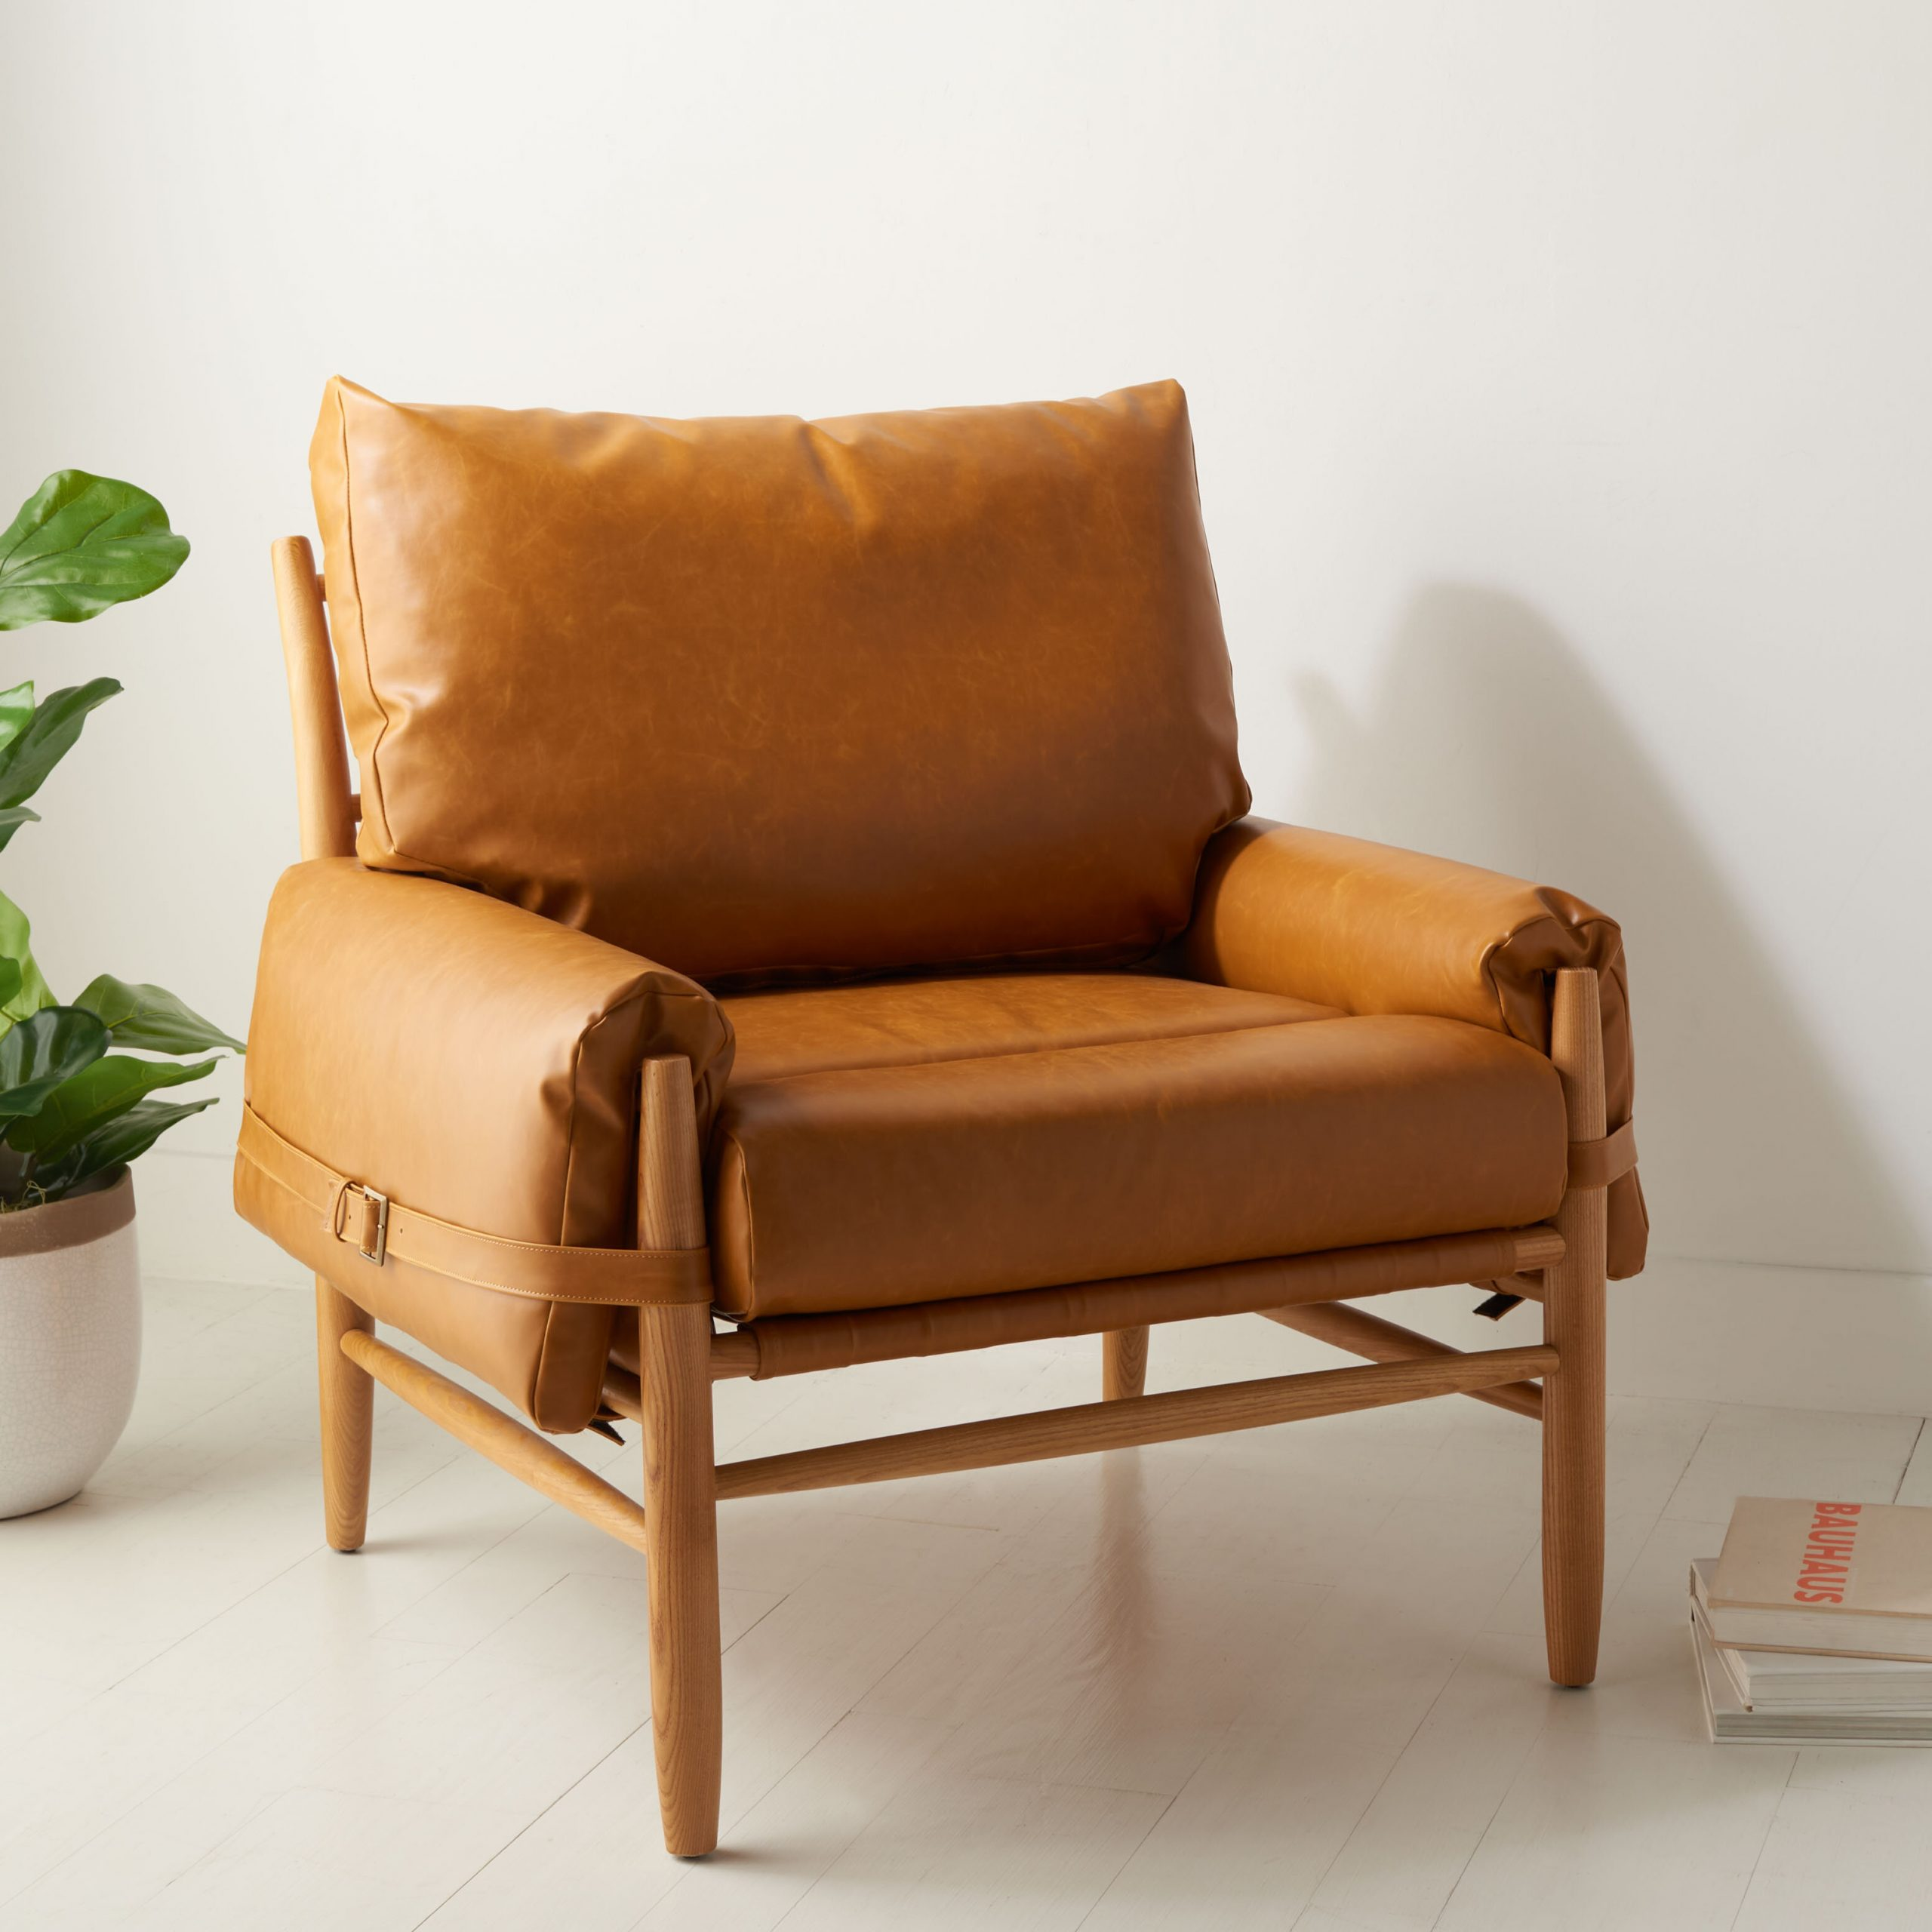 """Mendiola 34.7"""" W Faux Leather Armchair Inside Jarin Faux Leather Armchairs (Photo 6 of 15)"""